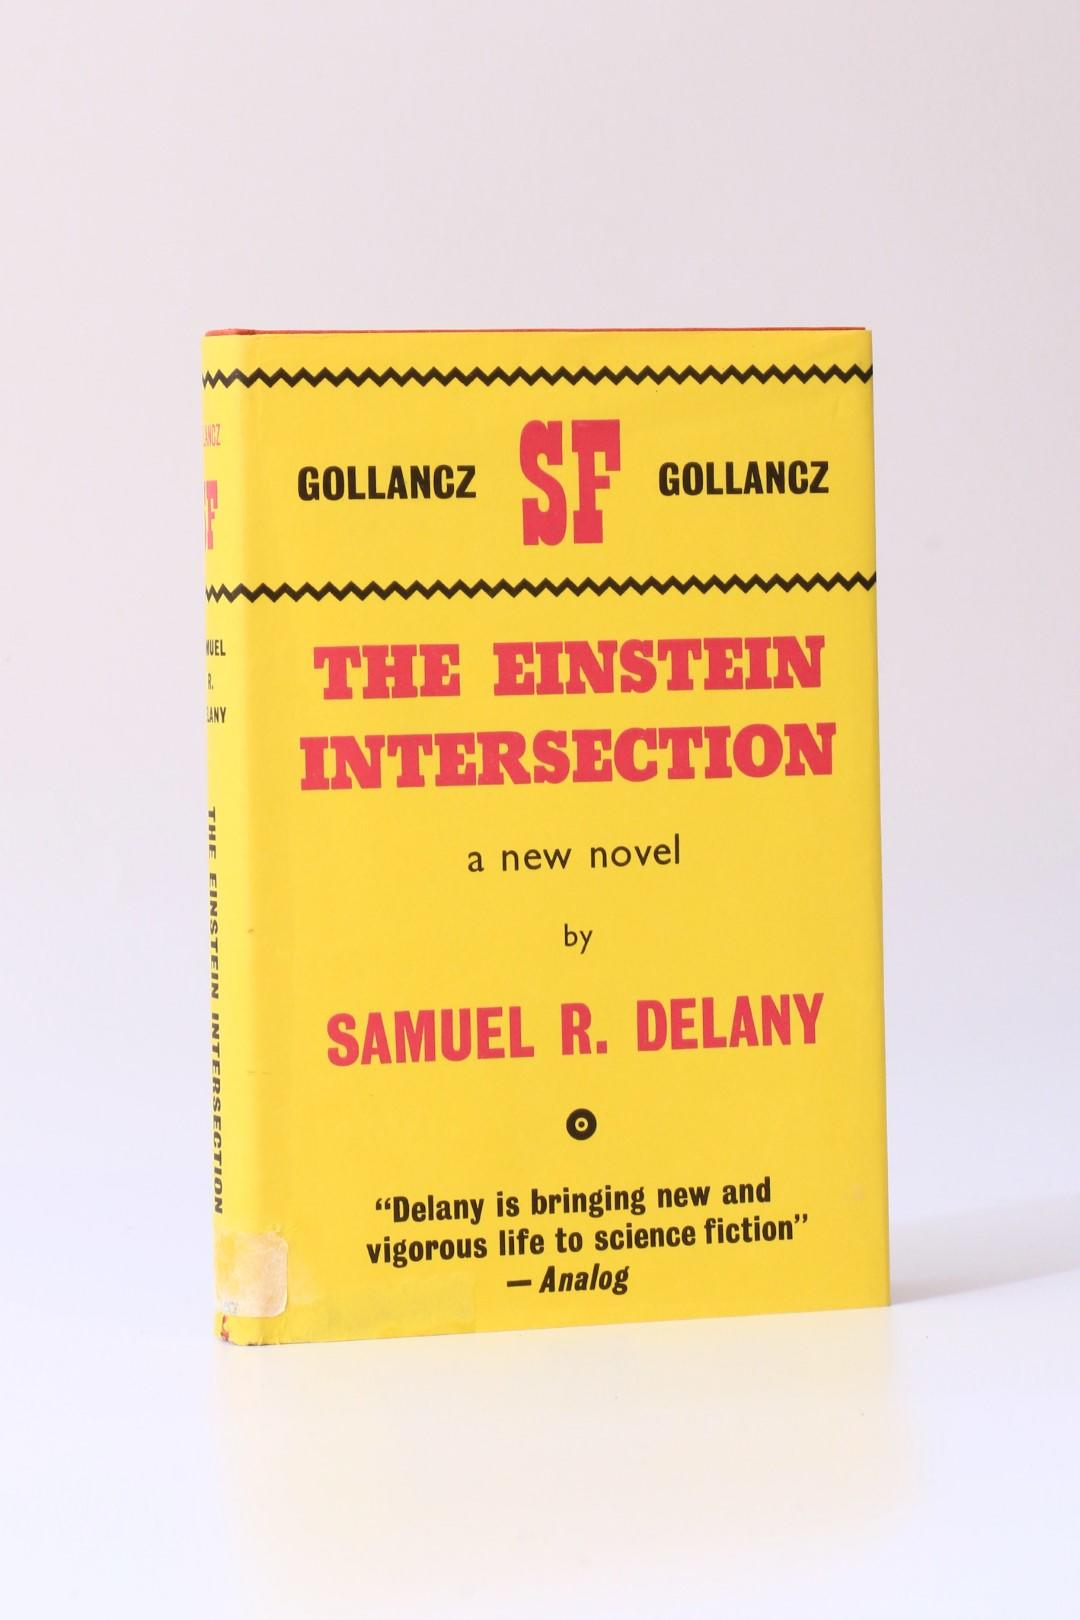 Samuel R. Delany - The Einstein Intersection - Gollancz, 1968, First Edition.